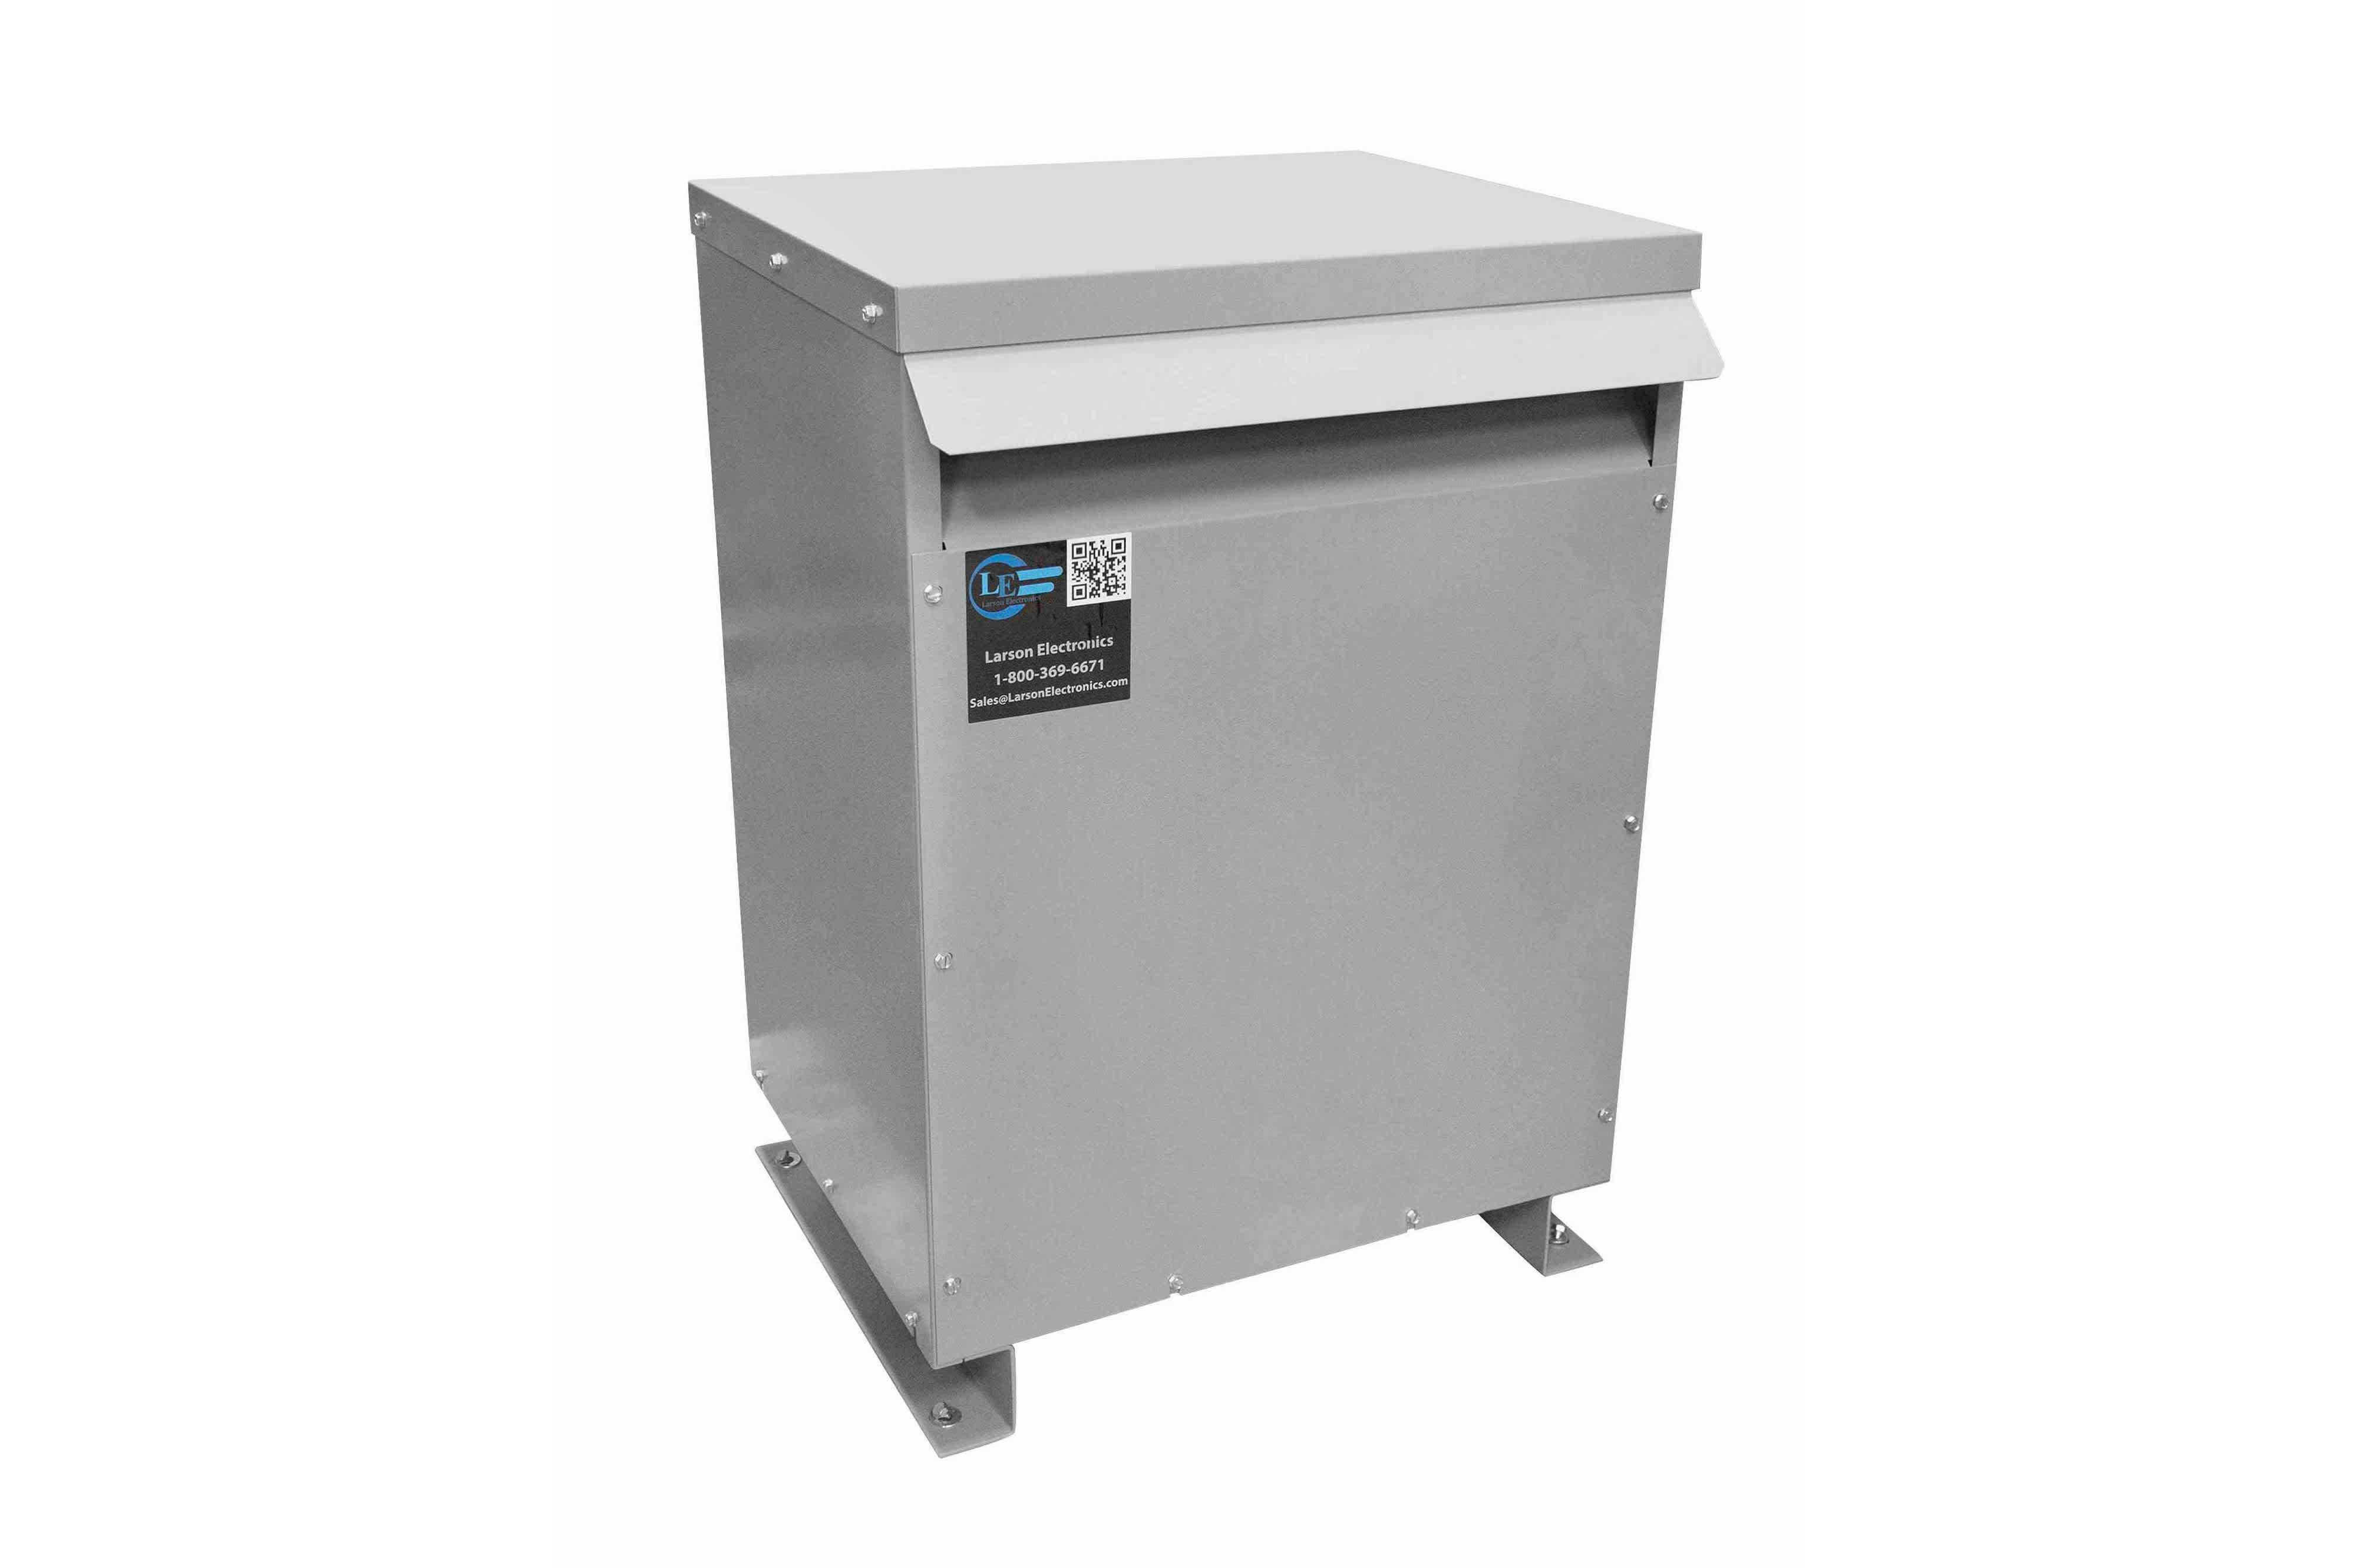 75 kVA 3PH Isolation Transformer, 480V Delta Primary, 240 Delta Secondary, N3R, Ventilated, 60 Hz